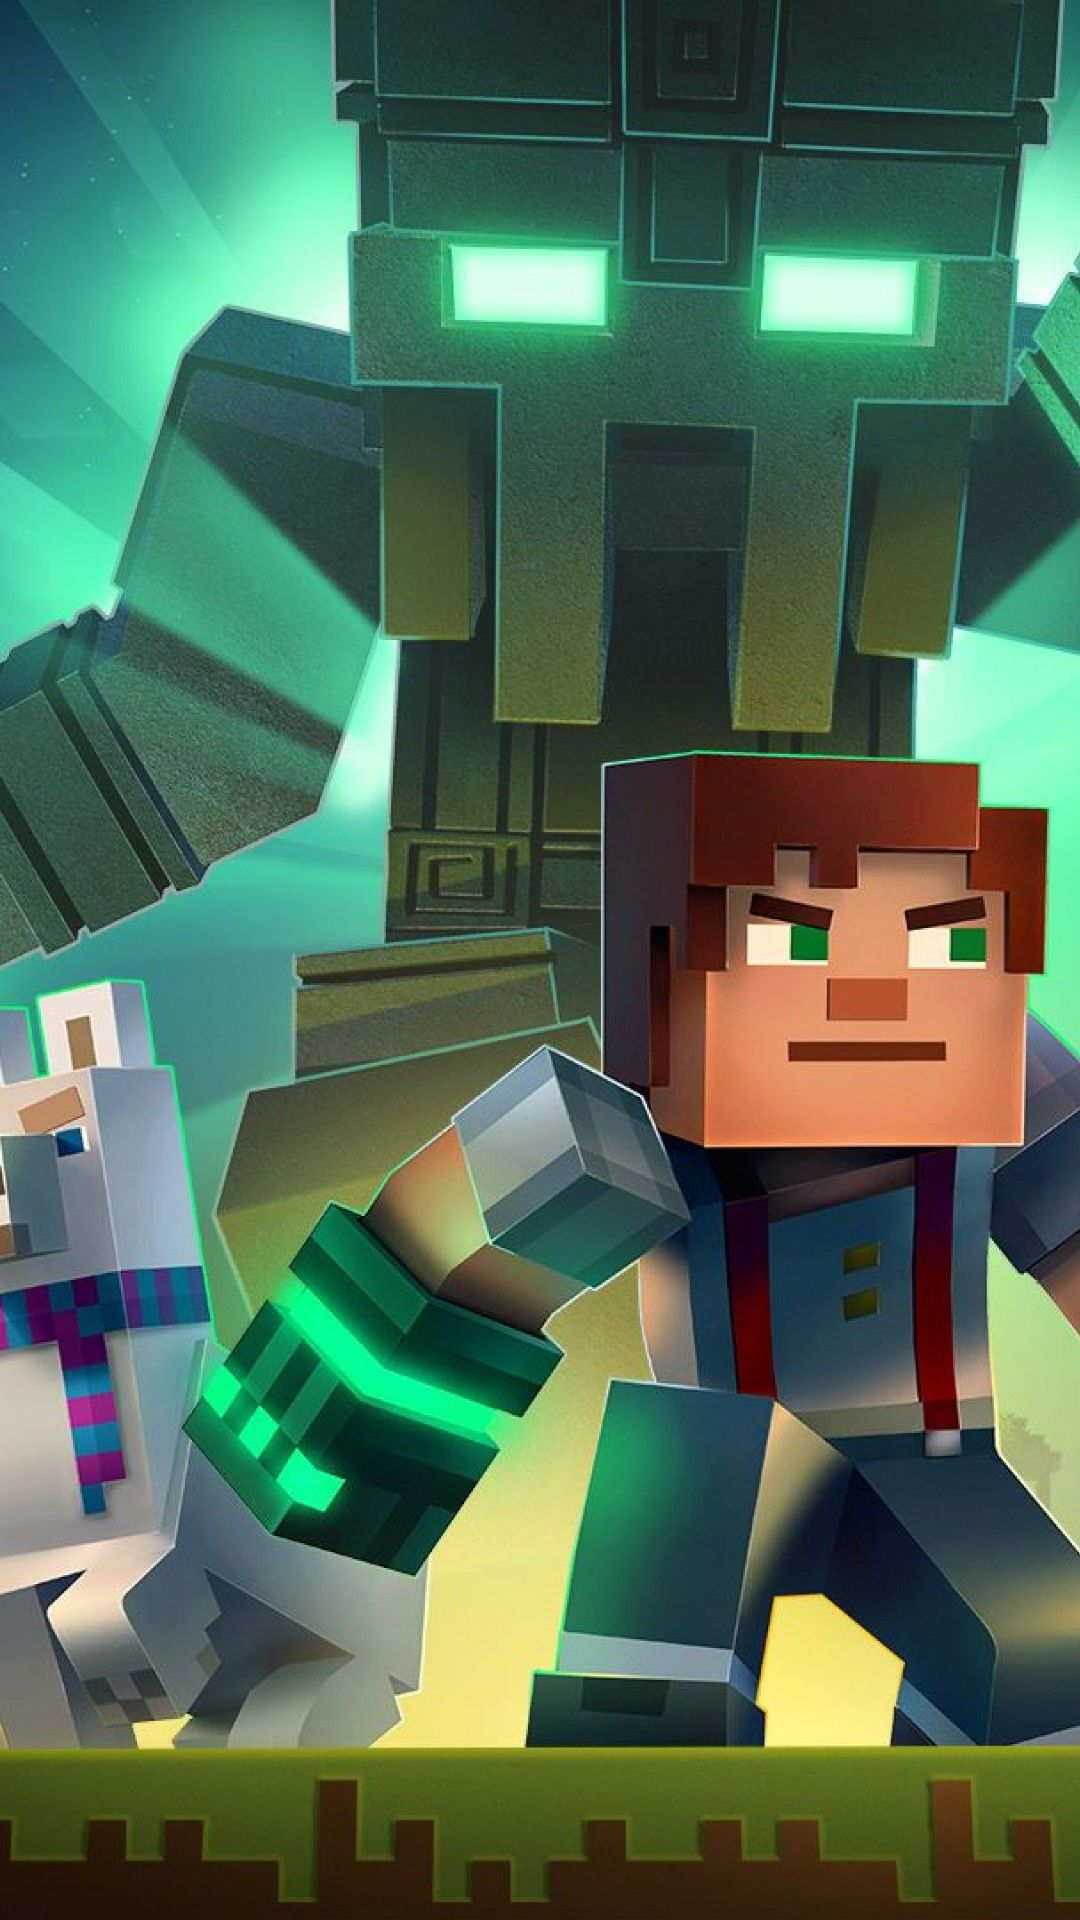 Minecraft Hd Wallpaper Makes You Feel Great Now Get Ready To Use